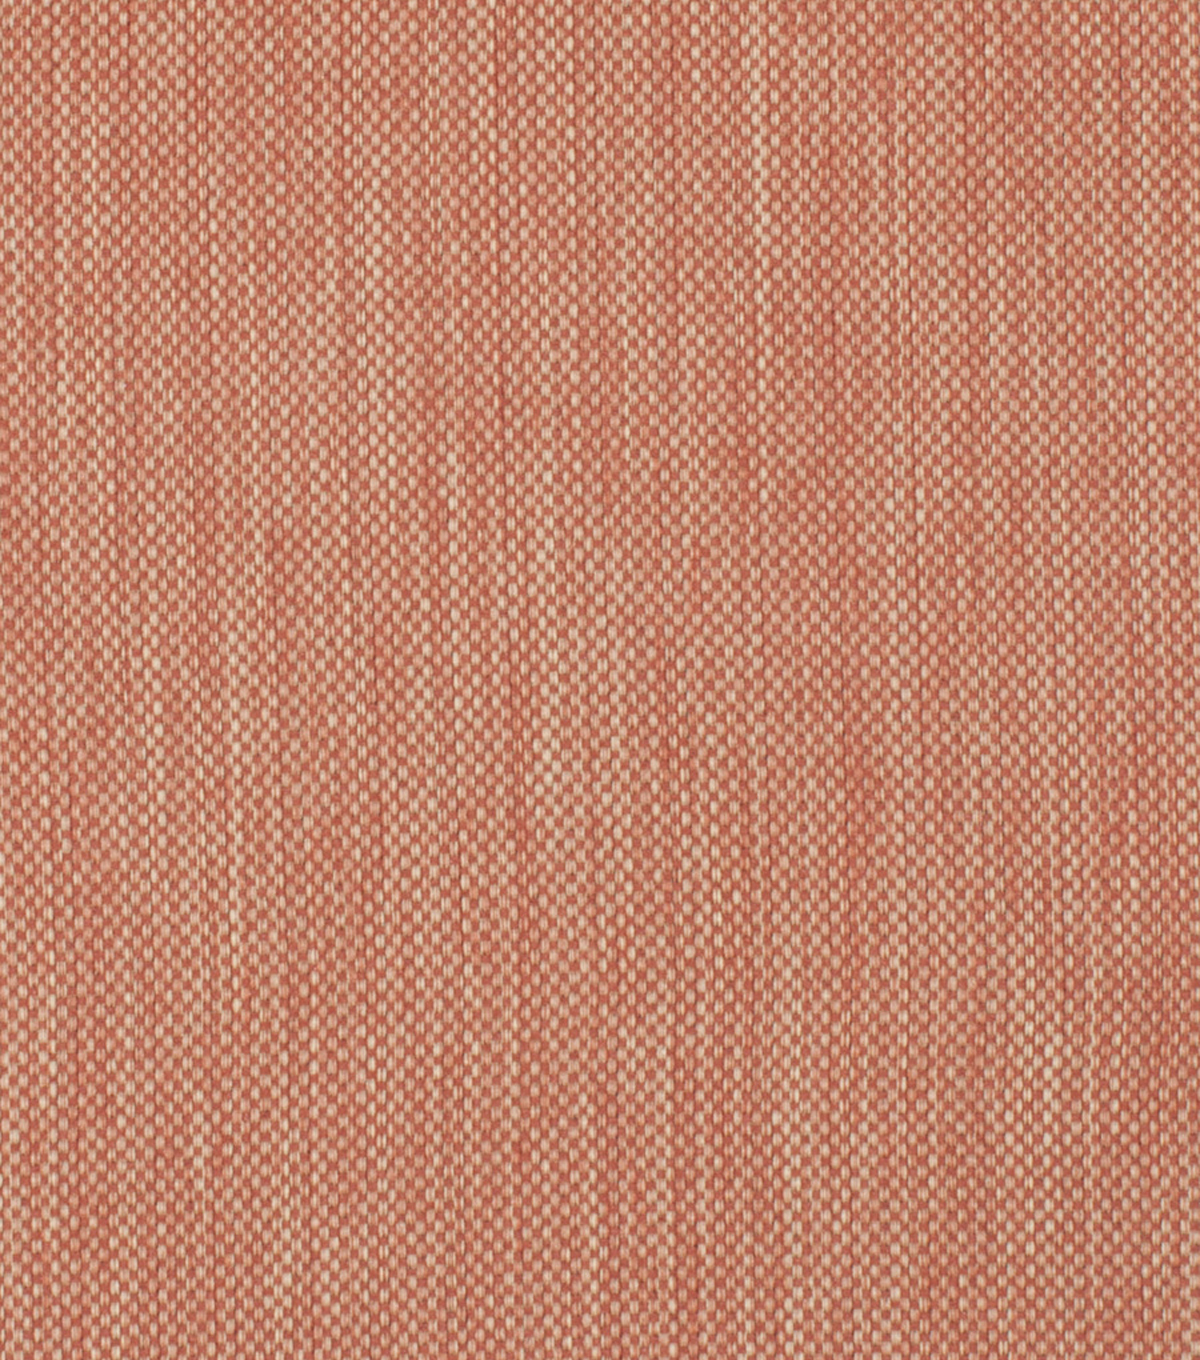 Home Decor 8\u0022x8\u0022 Fabric Swatch-Signature Series Lawton Amber